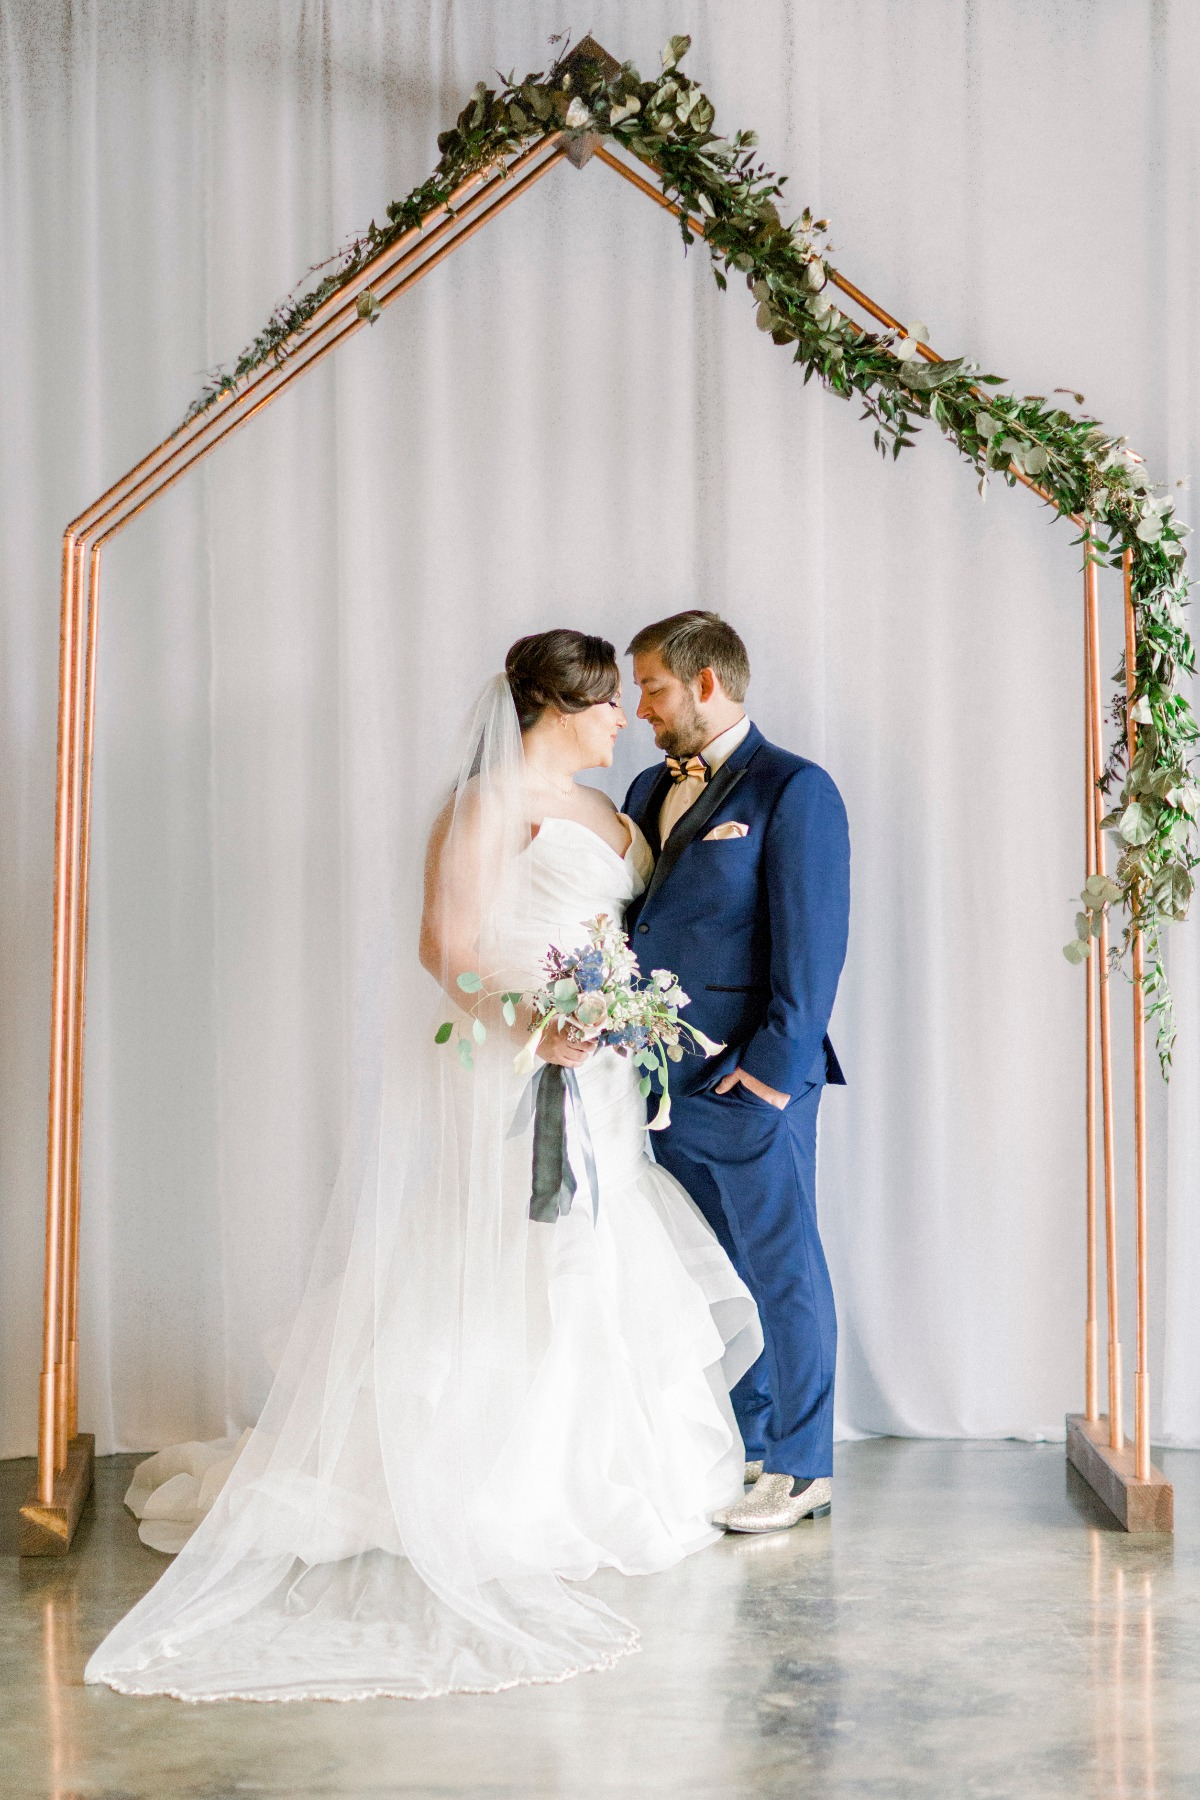 Copper wedding arbor